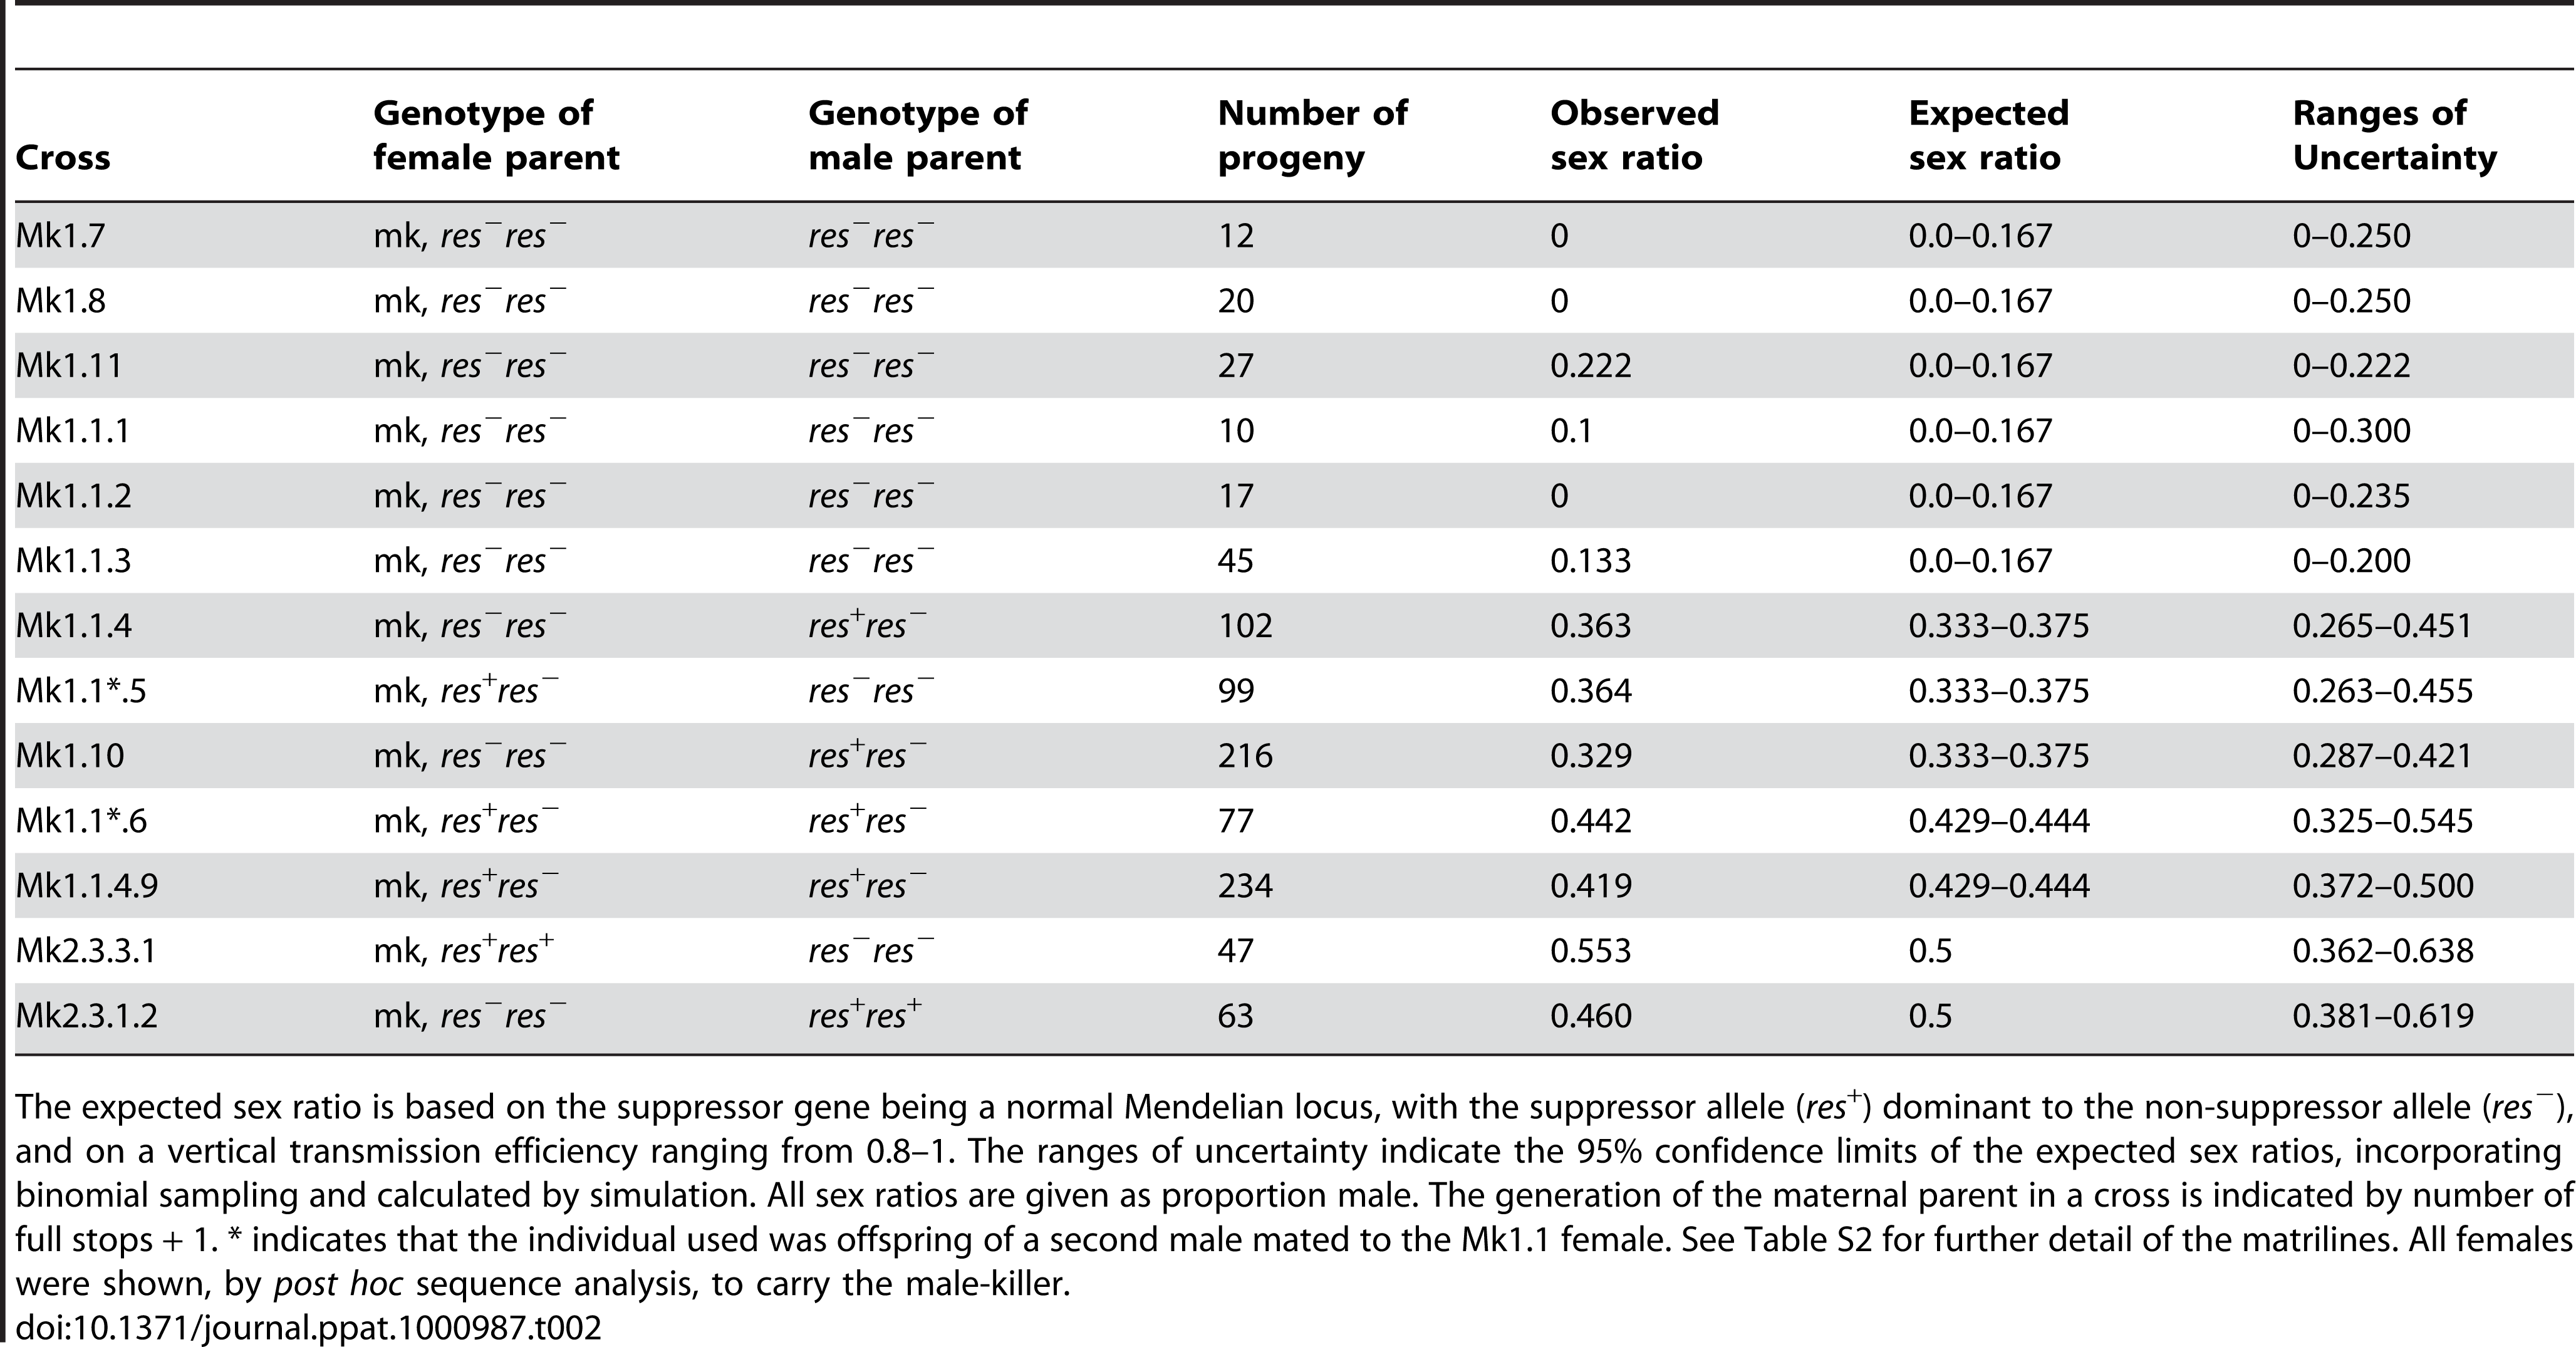 Results of single pair crosses of individuals of inferred male-killer status and suppressor gene genotype.